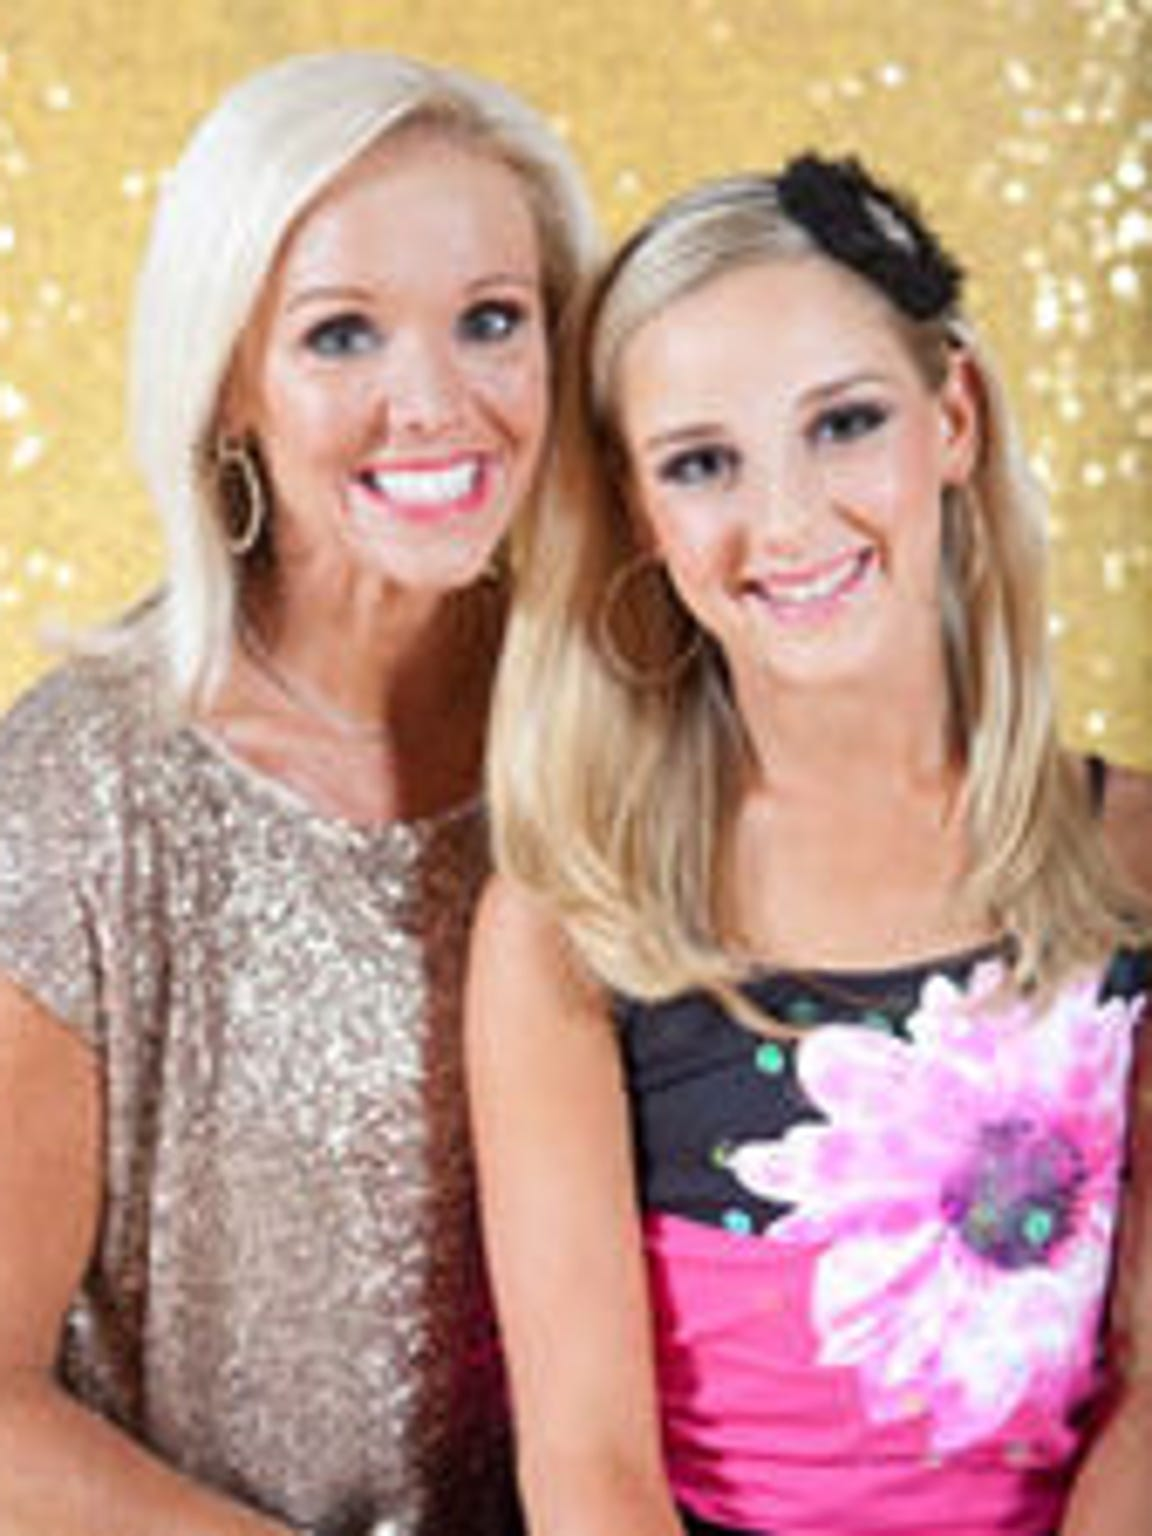 Hadley Walts (pictured with her mother Yvette) competed on Abby's Ultimate Dancing Competition and later appeared on Dance Moms.